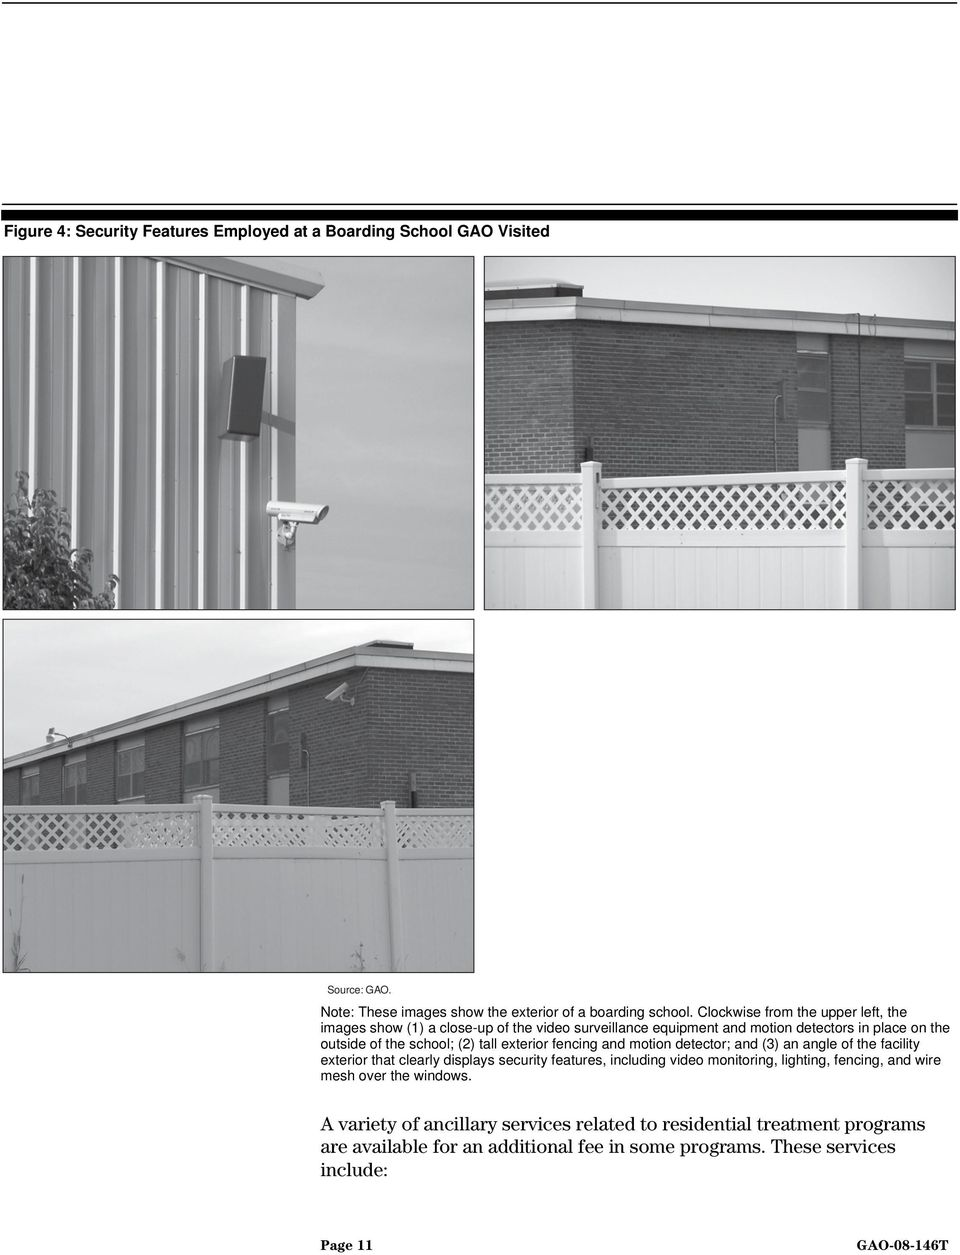 exterior fencing and motion detector; and (3) an angle of the facility exterior that clearly displays security features, including video monitoring, lighting,